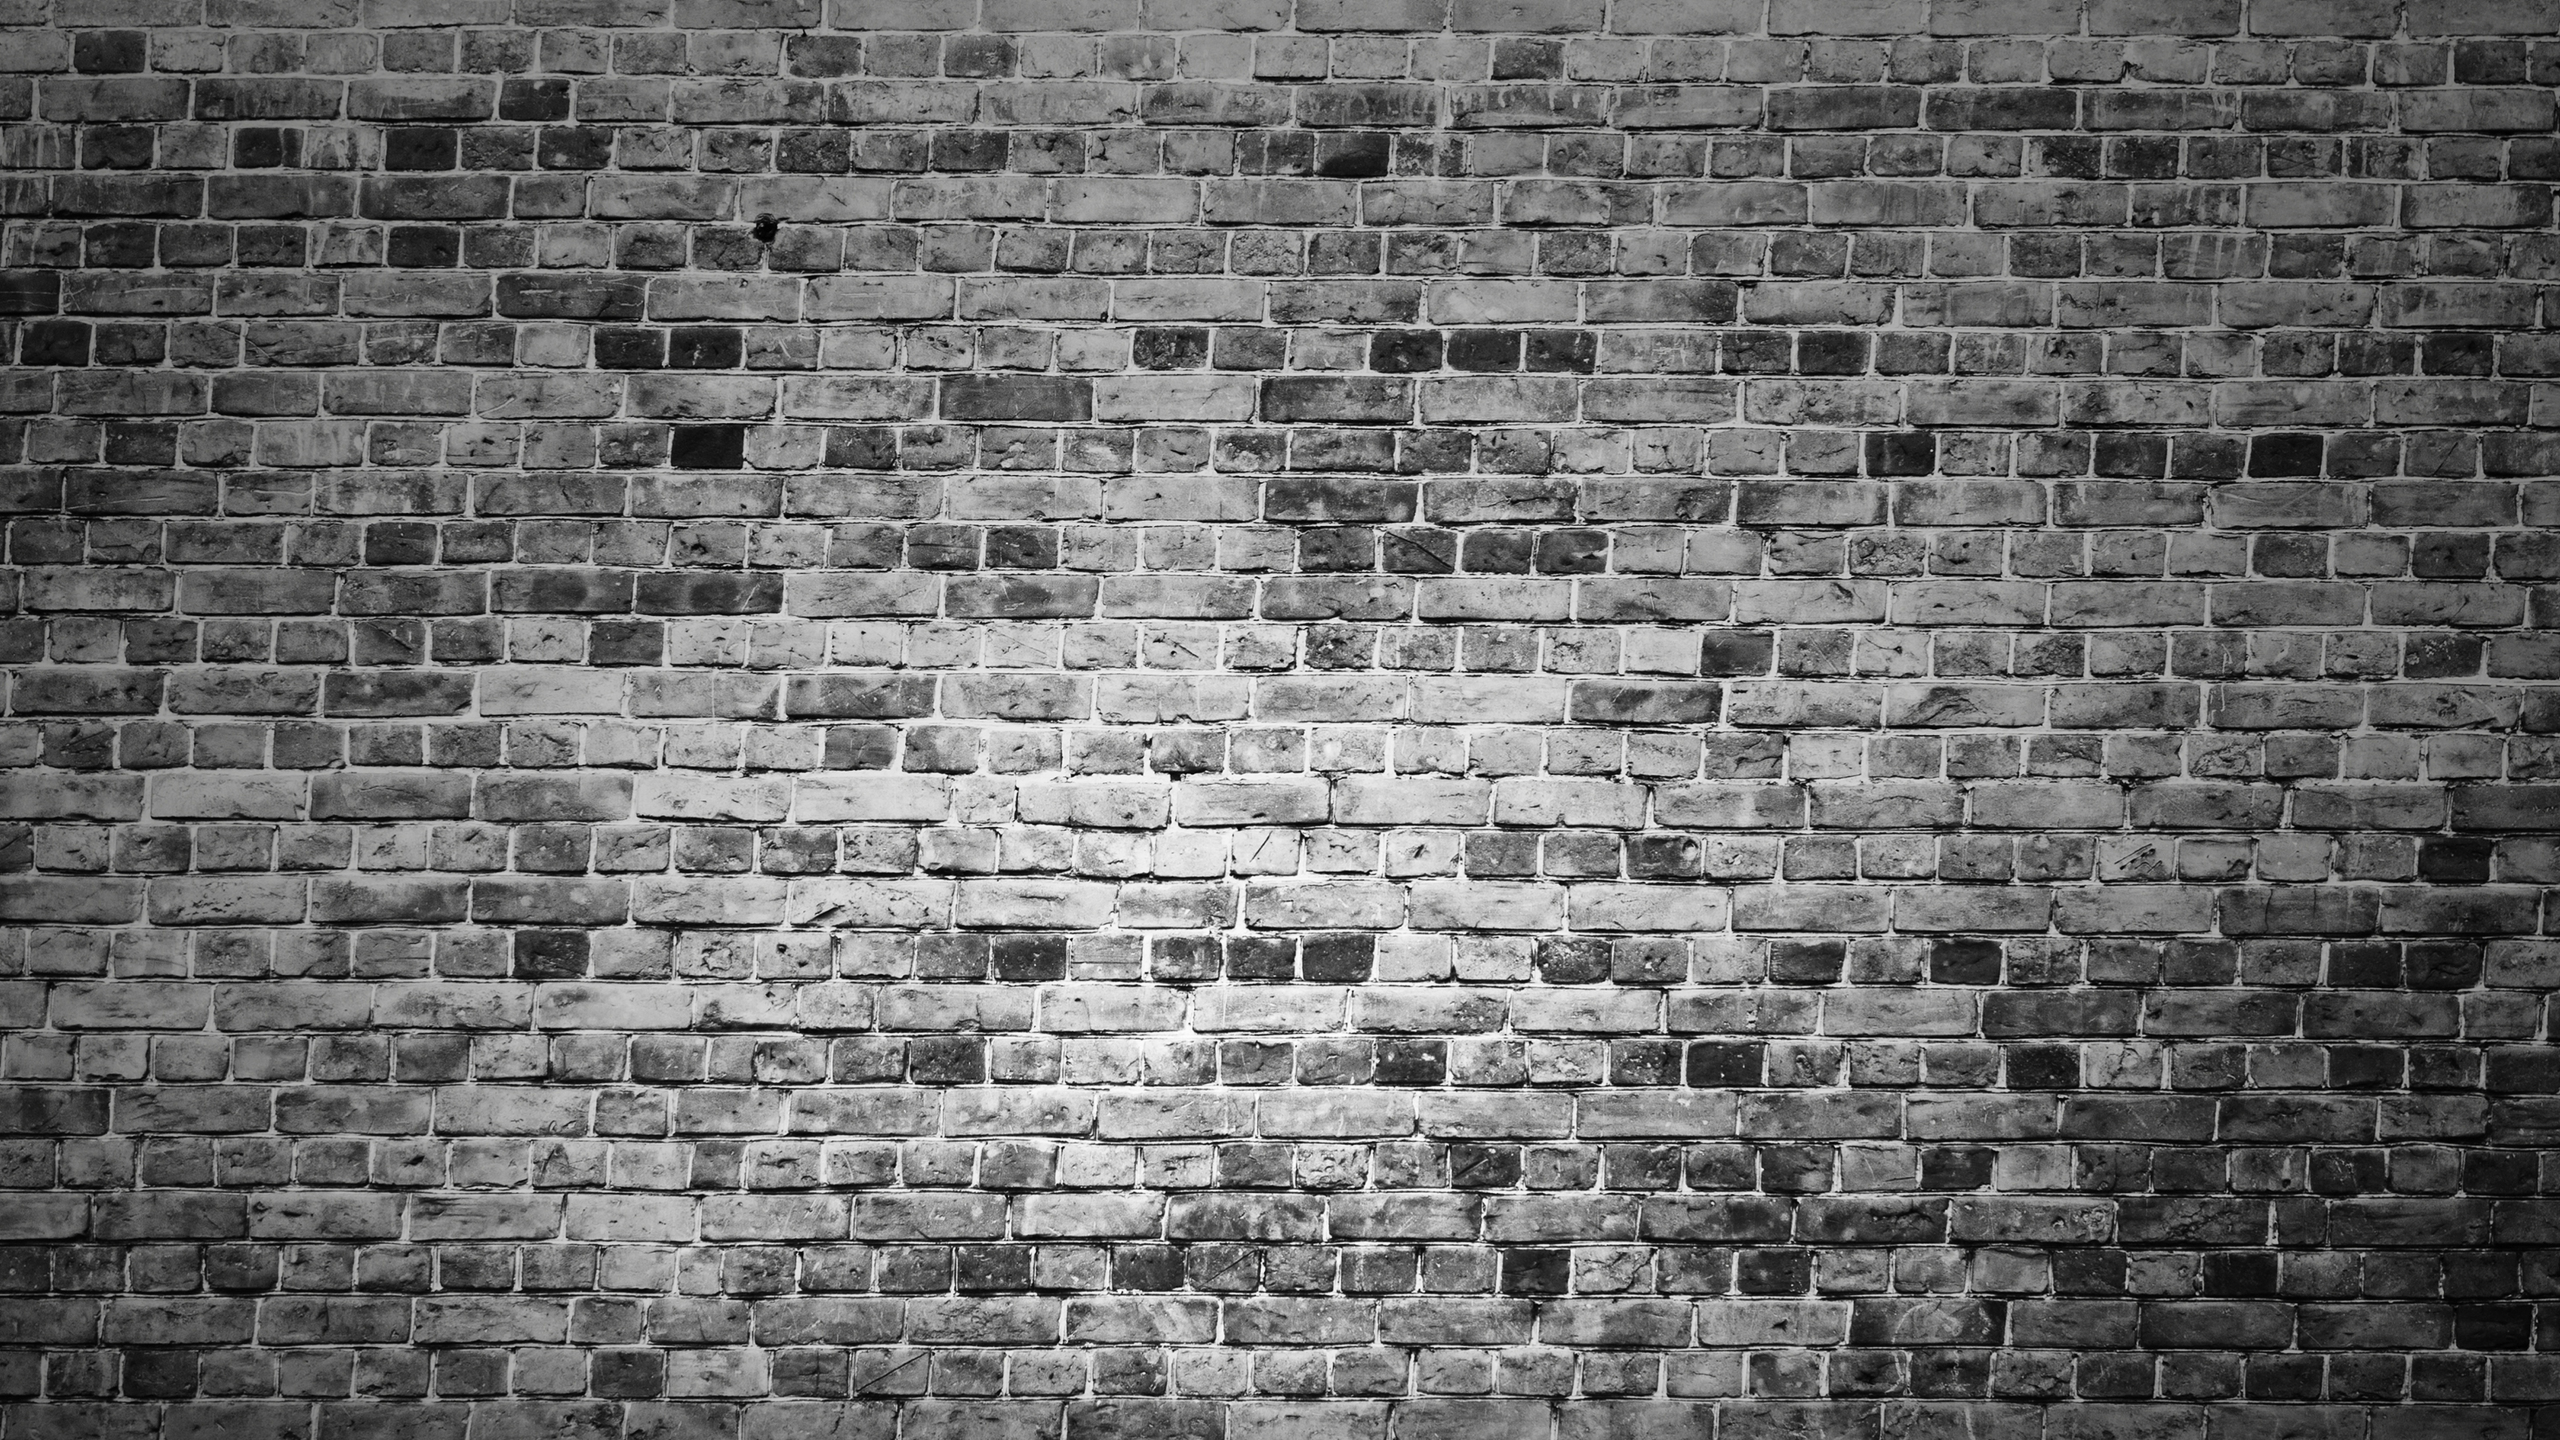 Download 2560x1440 wallpaper brick wall, black and white ...